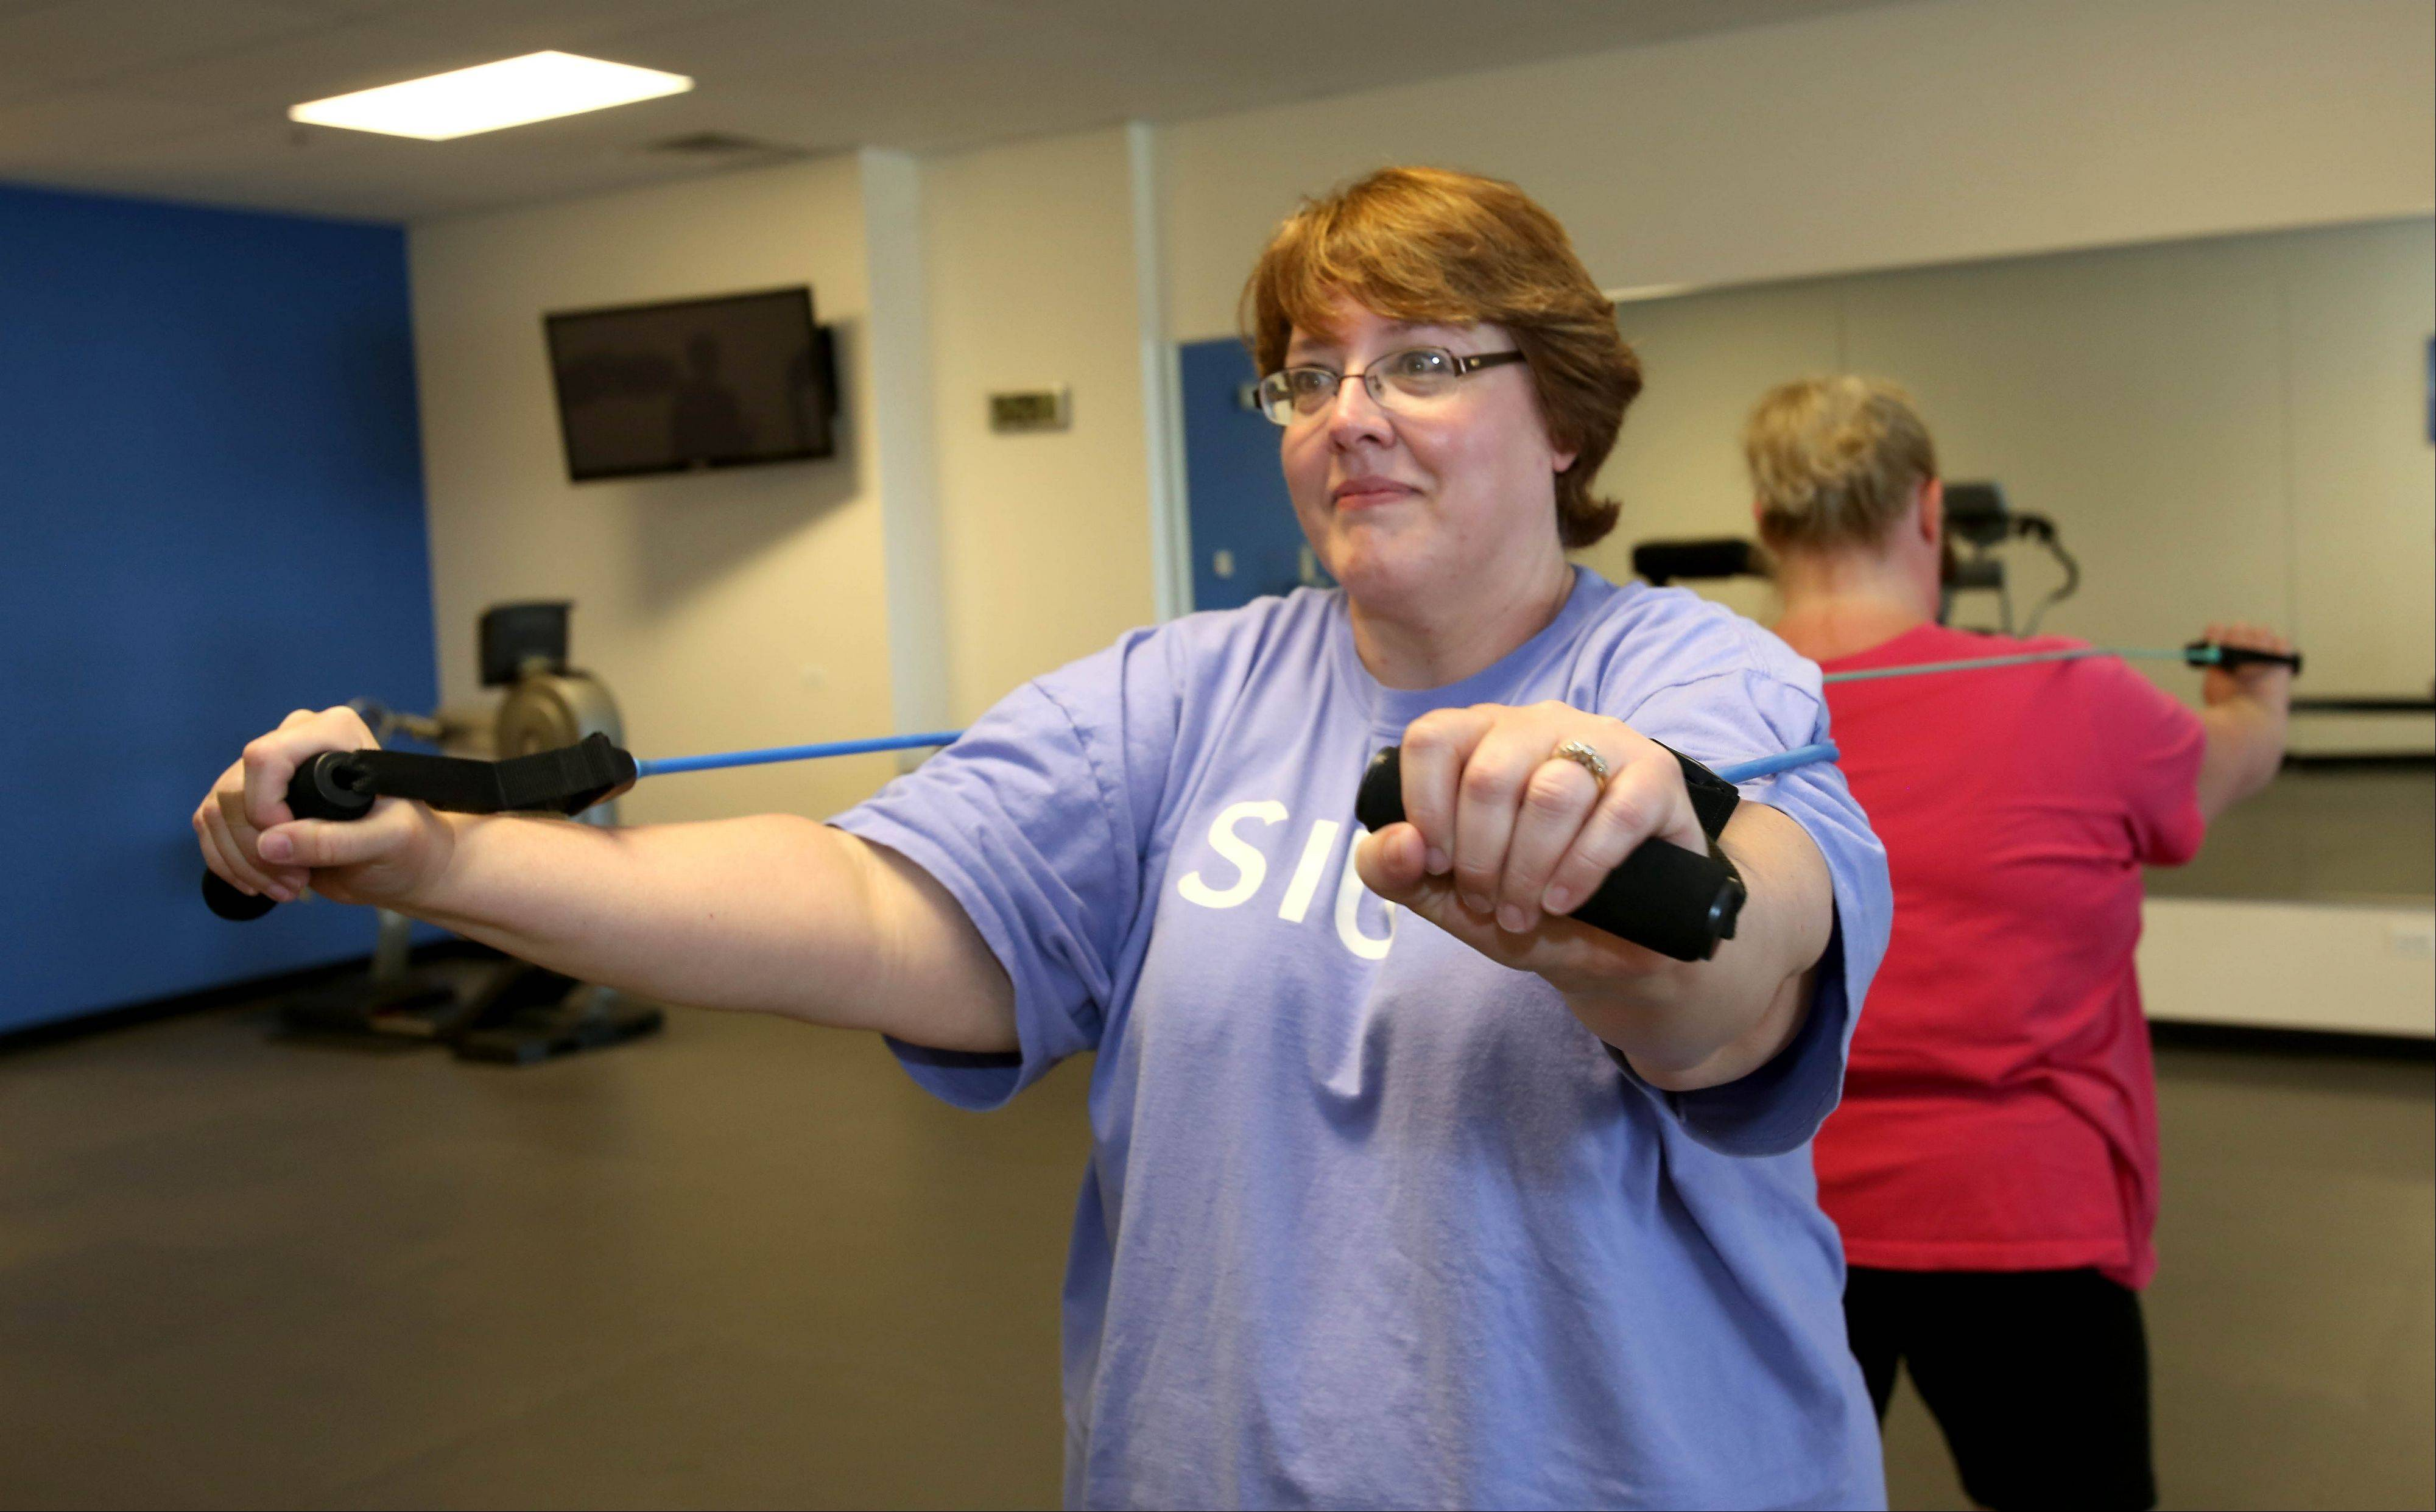 Diane Reiter of Aurora uses a resistance band during a recent workout at Downsize Fitness in Naperville. Downsize has locations in Chicago, Dallas, New York City and Naperville.